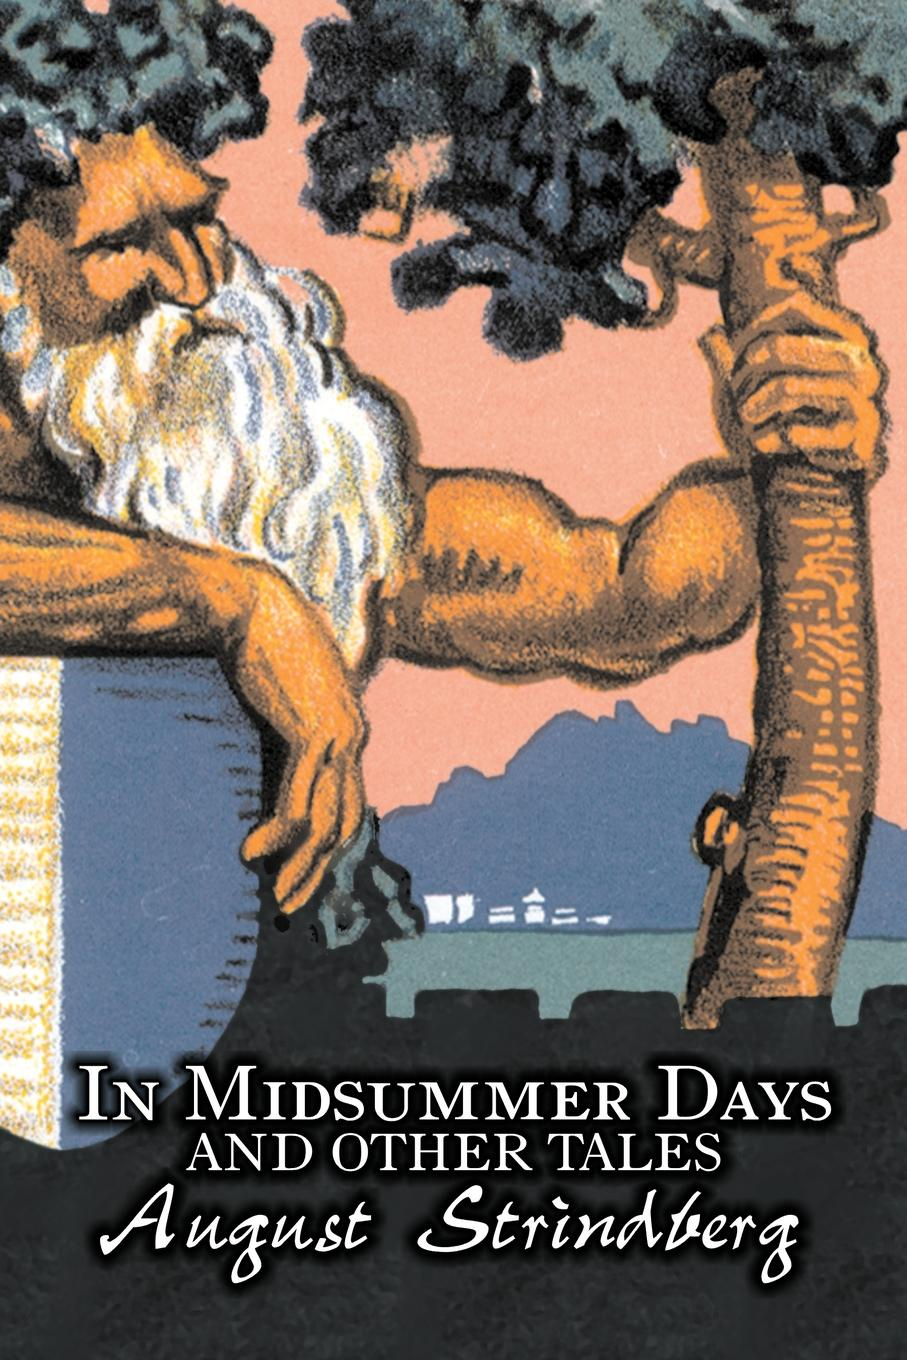 August Strindberg, Ellie Schleussner In Midsummer Days and Other Tales by August Strindberg, Fiction, Literary, Short Stories victor branford the coming polity a study in reconstruction by victor branford and patrick geddes